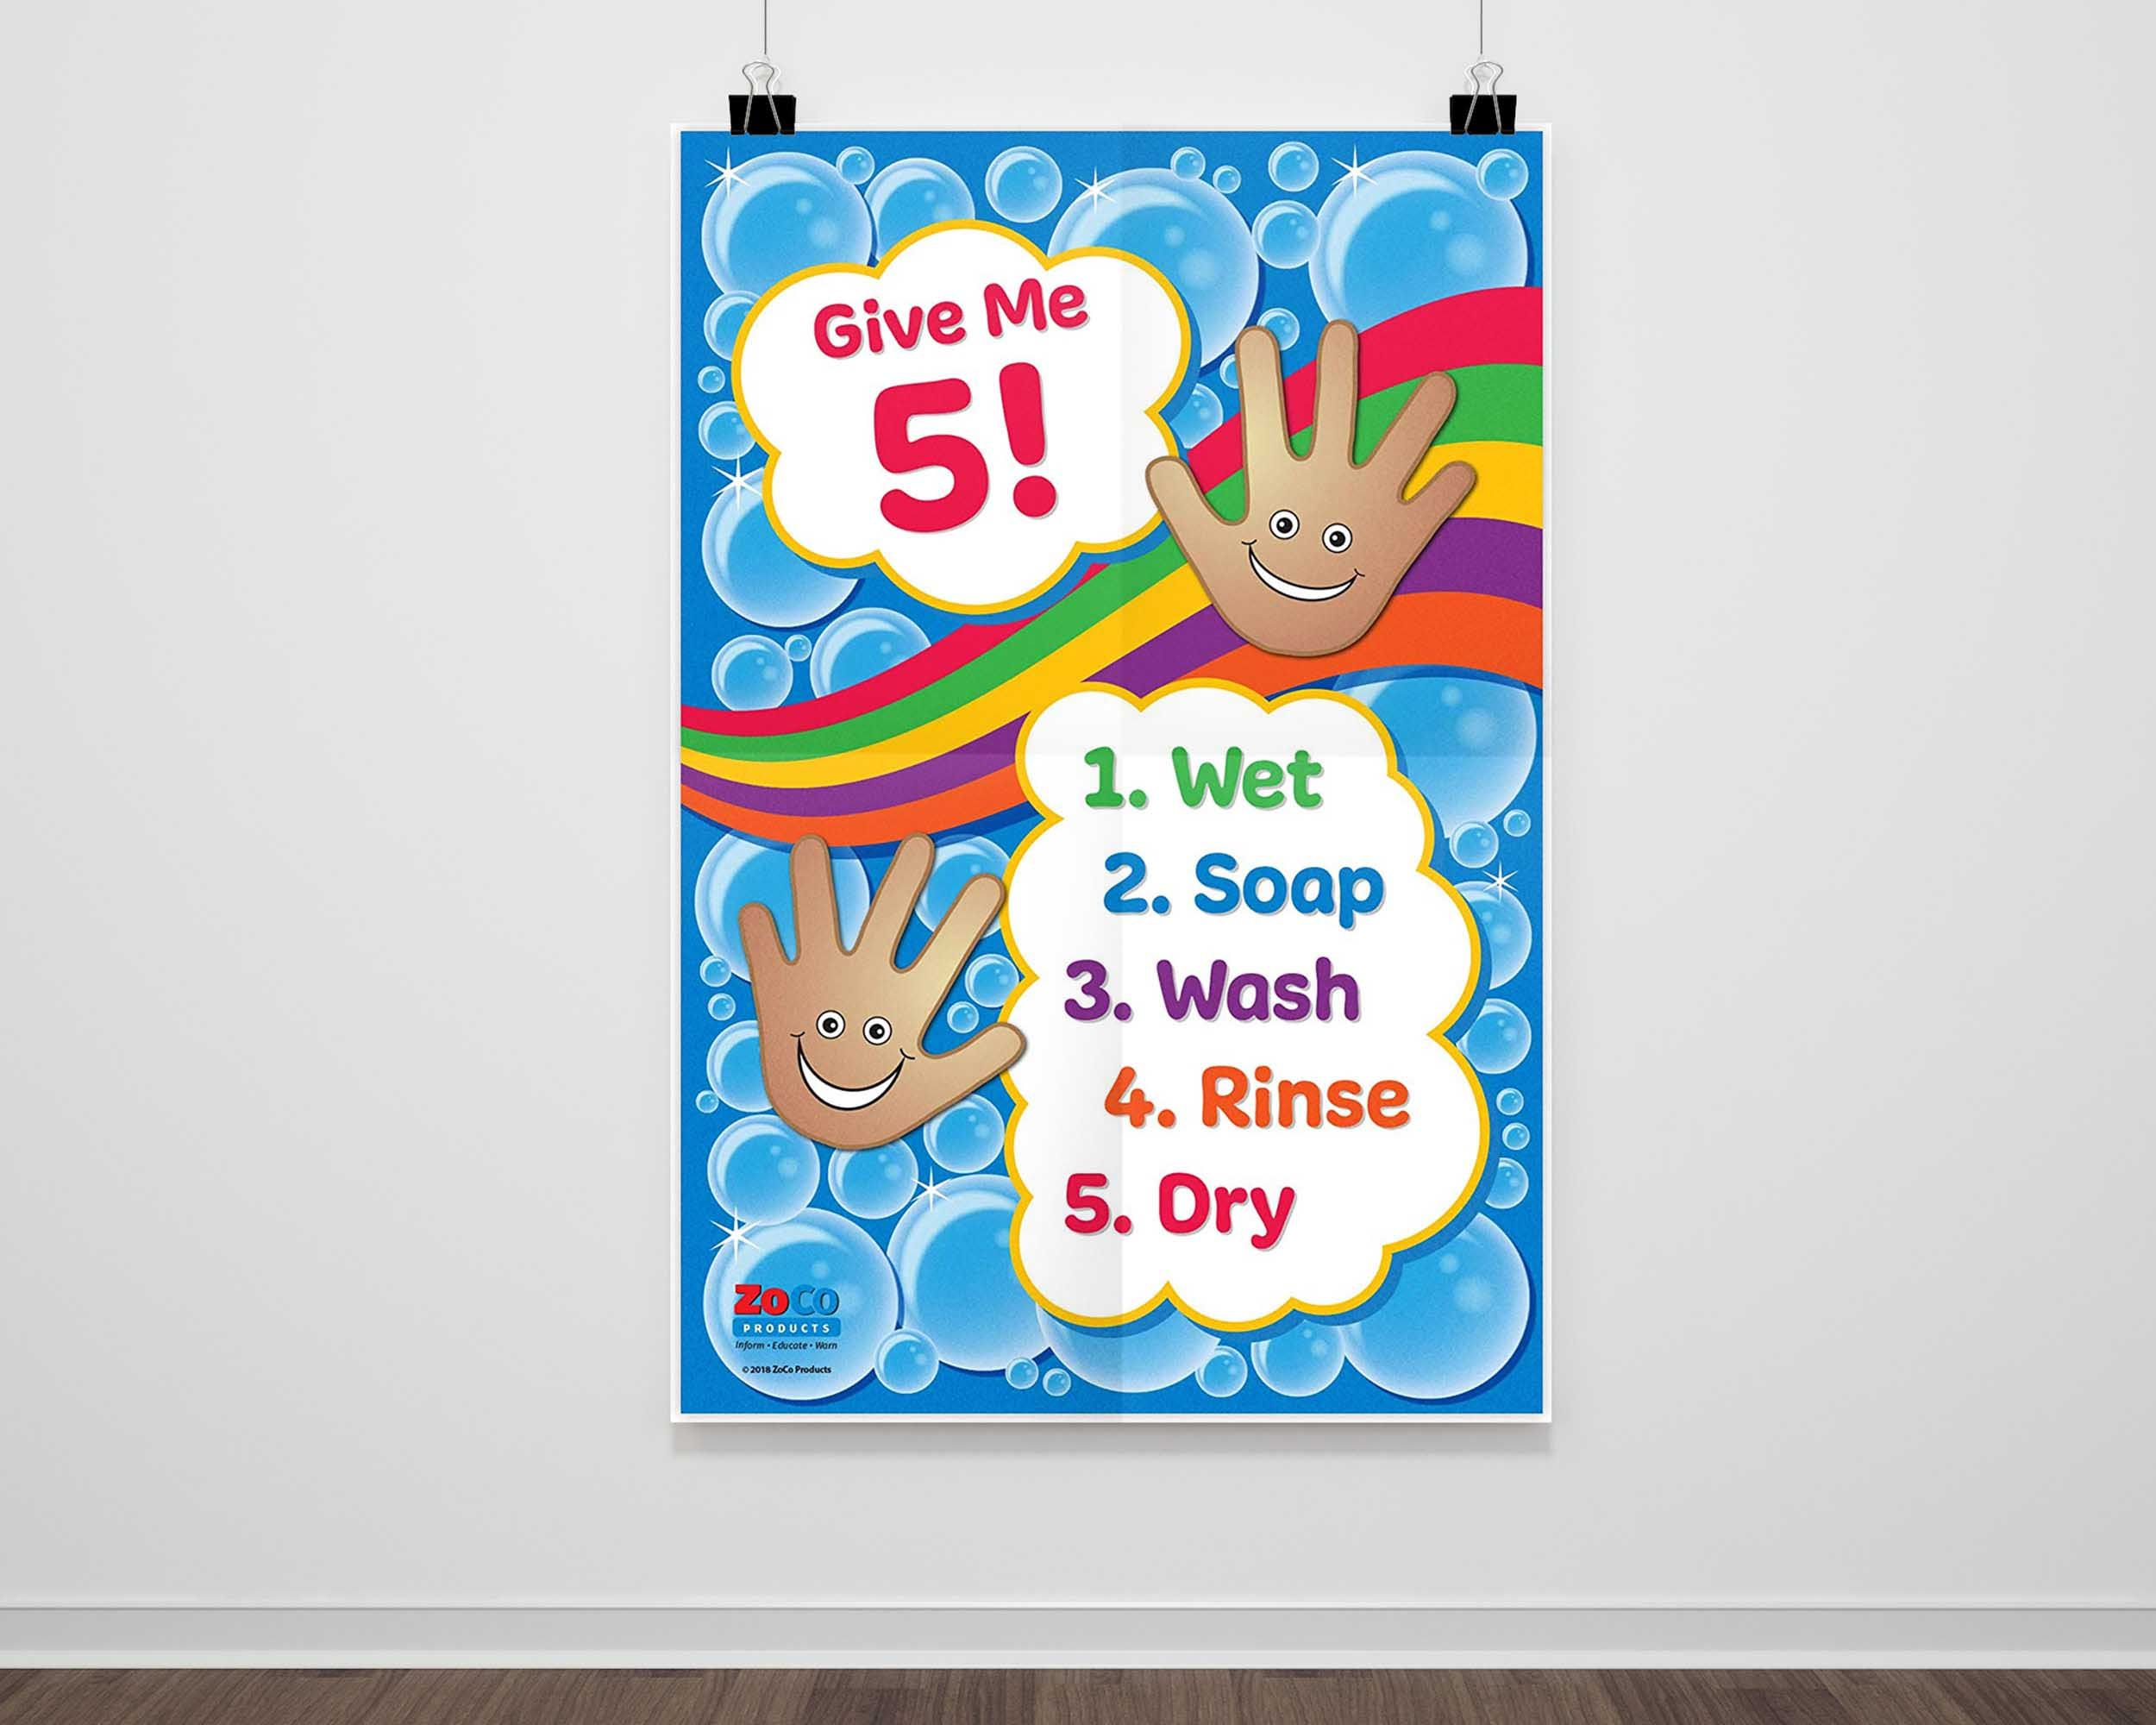 Insta Print Marketing Material Poster